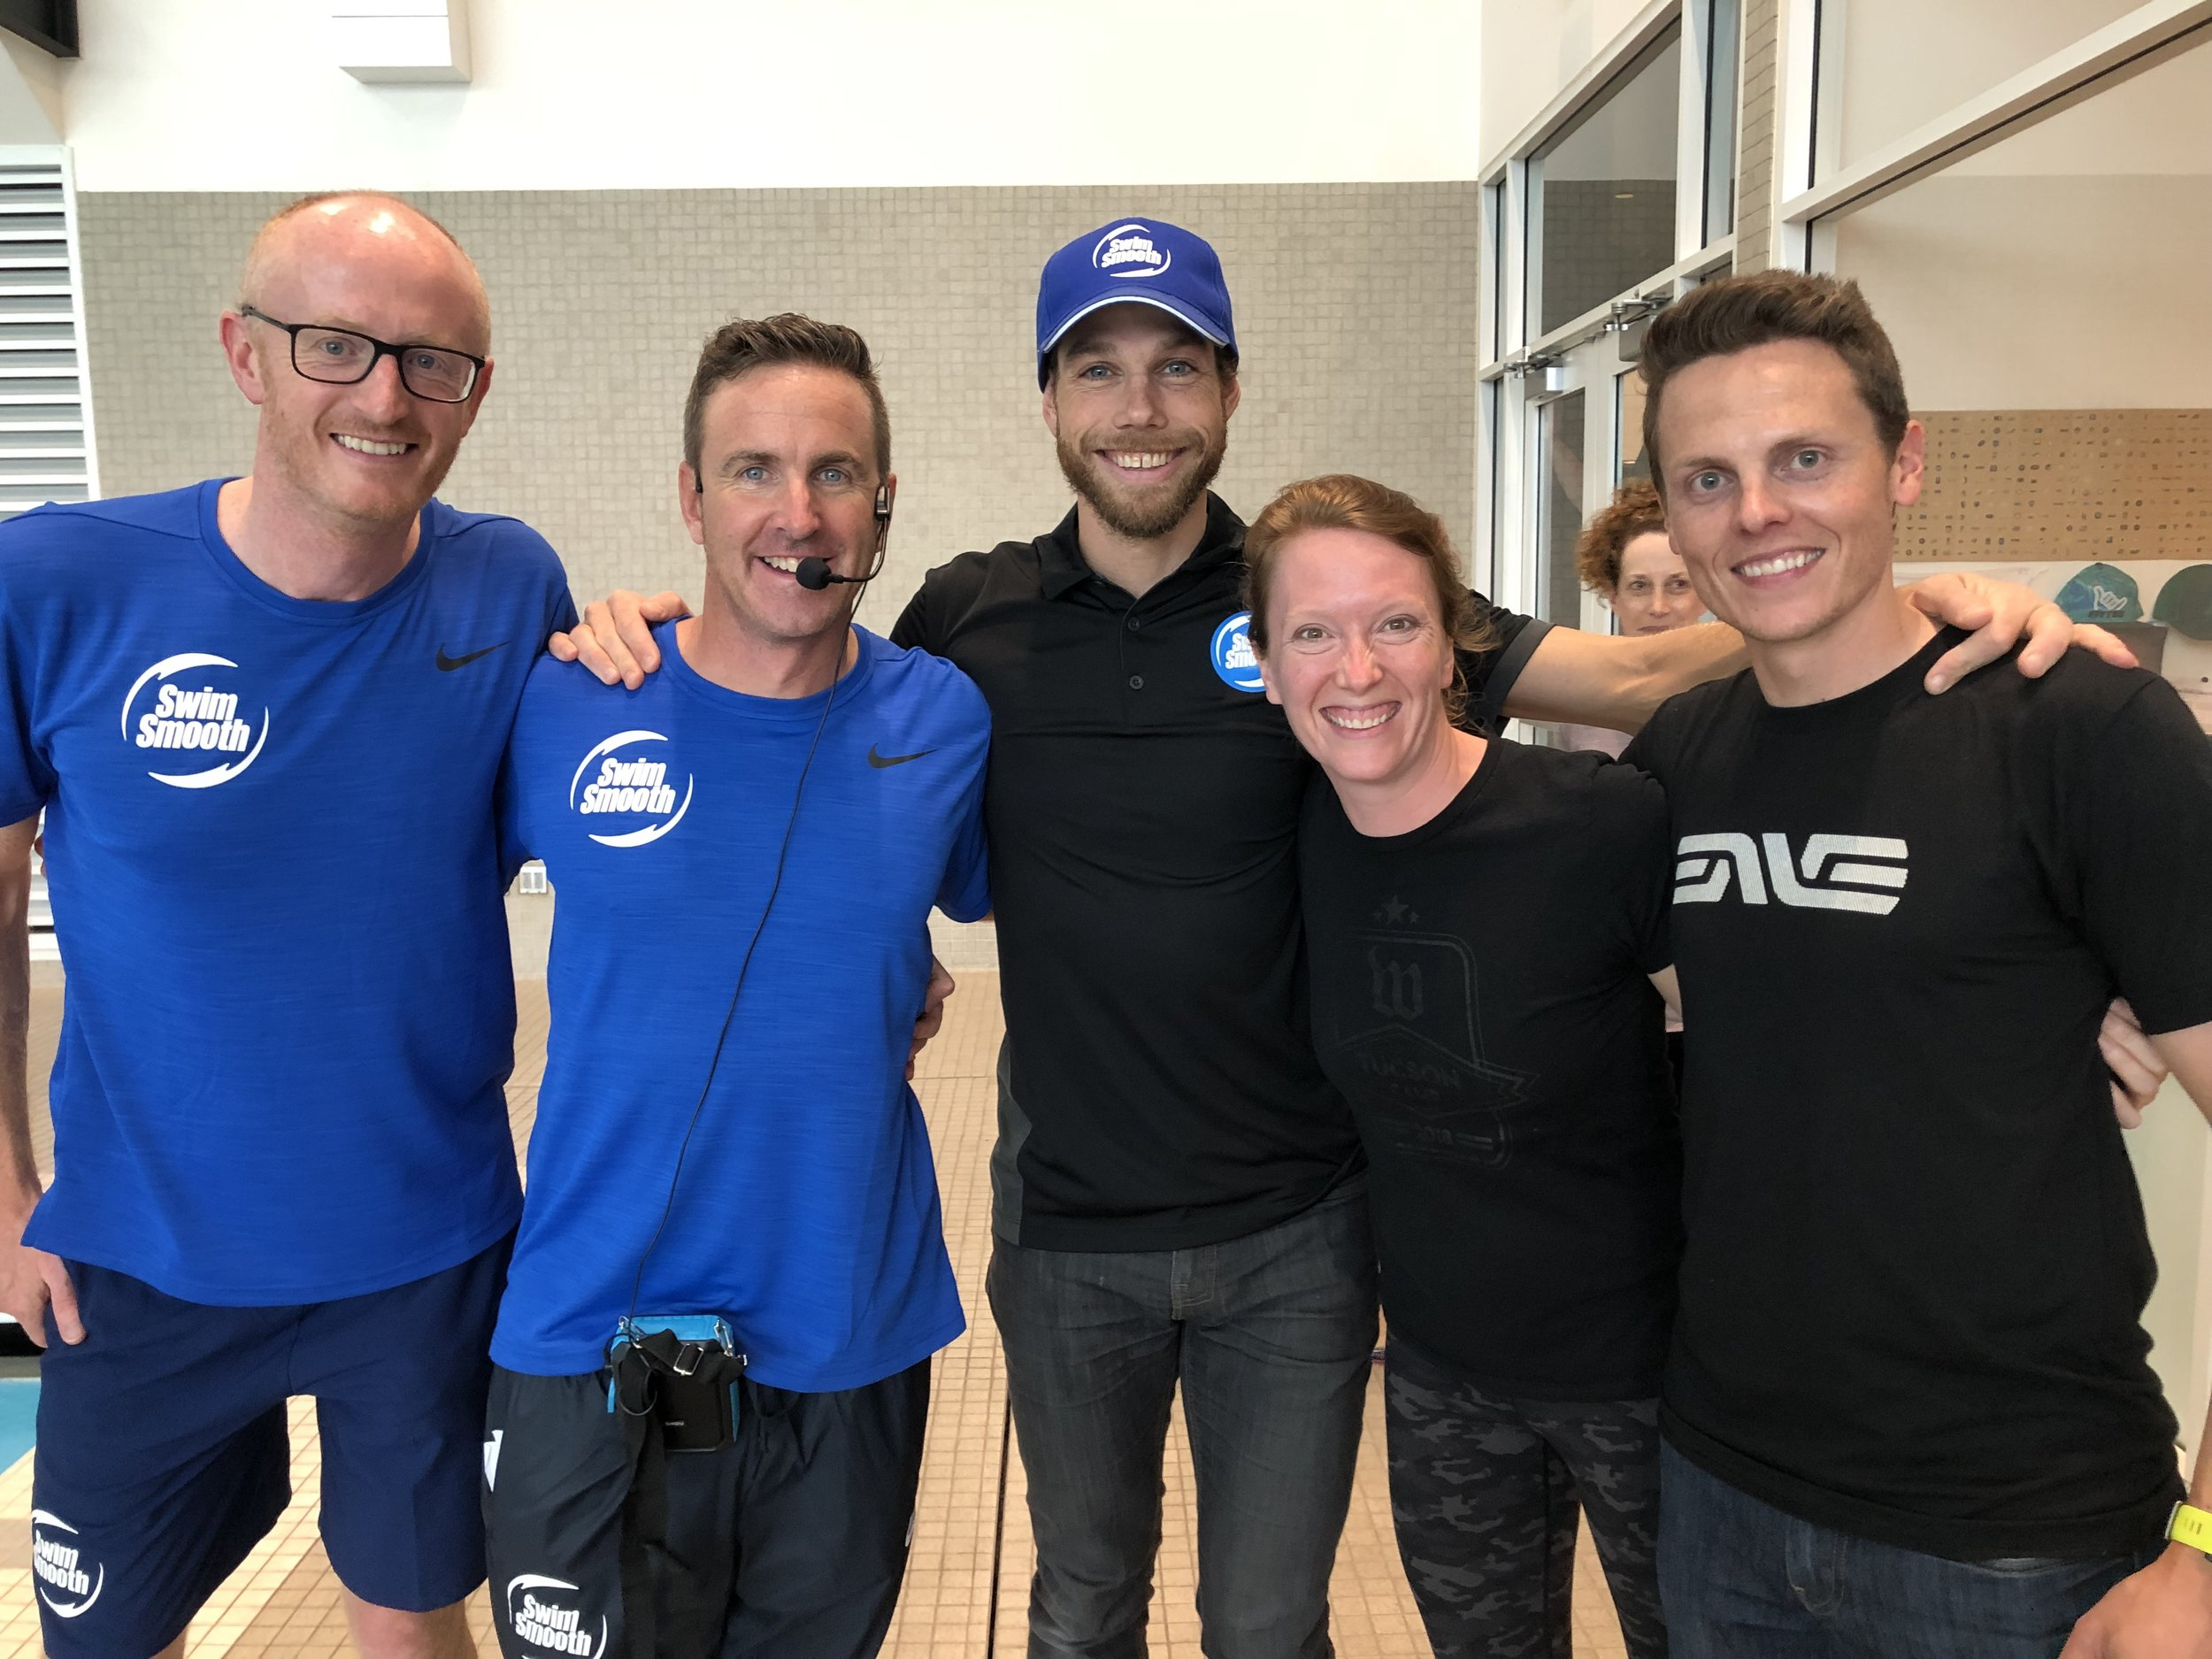 Swim Smooth Co-Founders Adam Young and Paul Newsome, and CBCG Coaches Chris Bagg, Molly Balfe, and Josh Sutton at the Swim Smooth 3-day Coaches Education Course